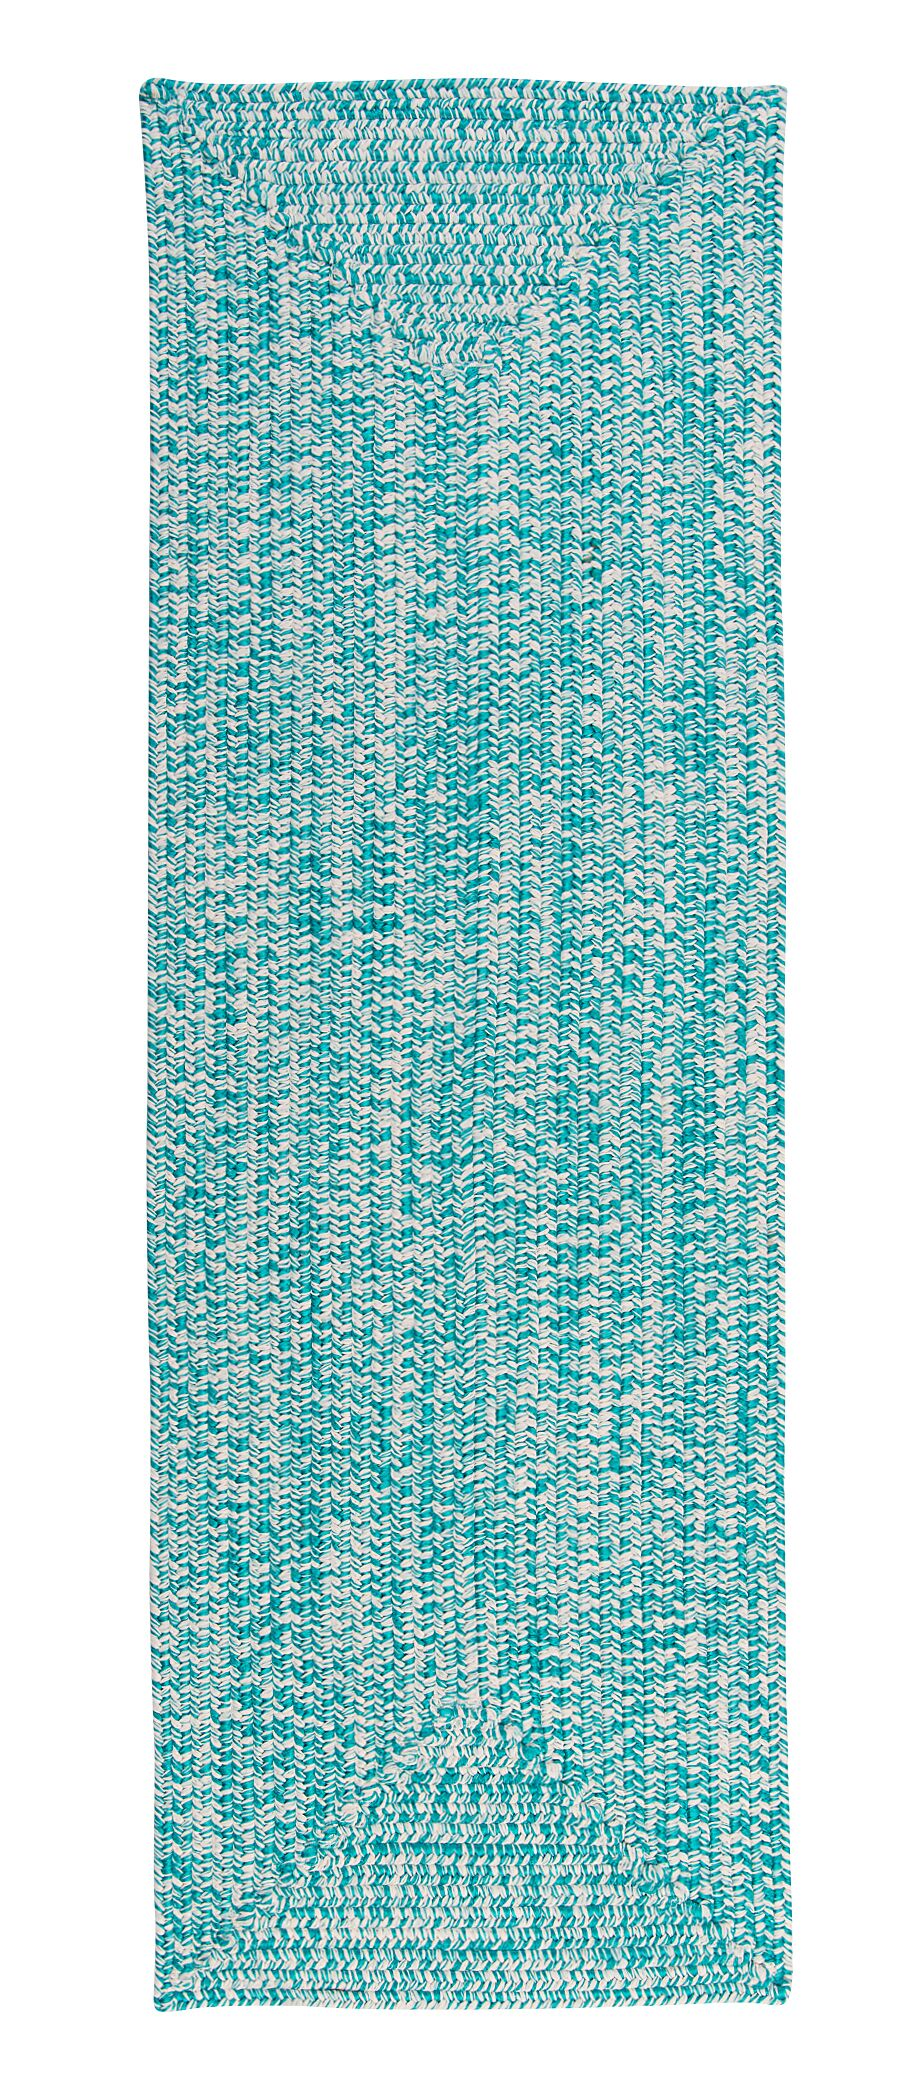 Hawkins Turquoise Indoor/Outdoor Area Rug Rug Size: Runner 2' x 8'